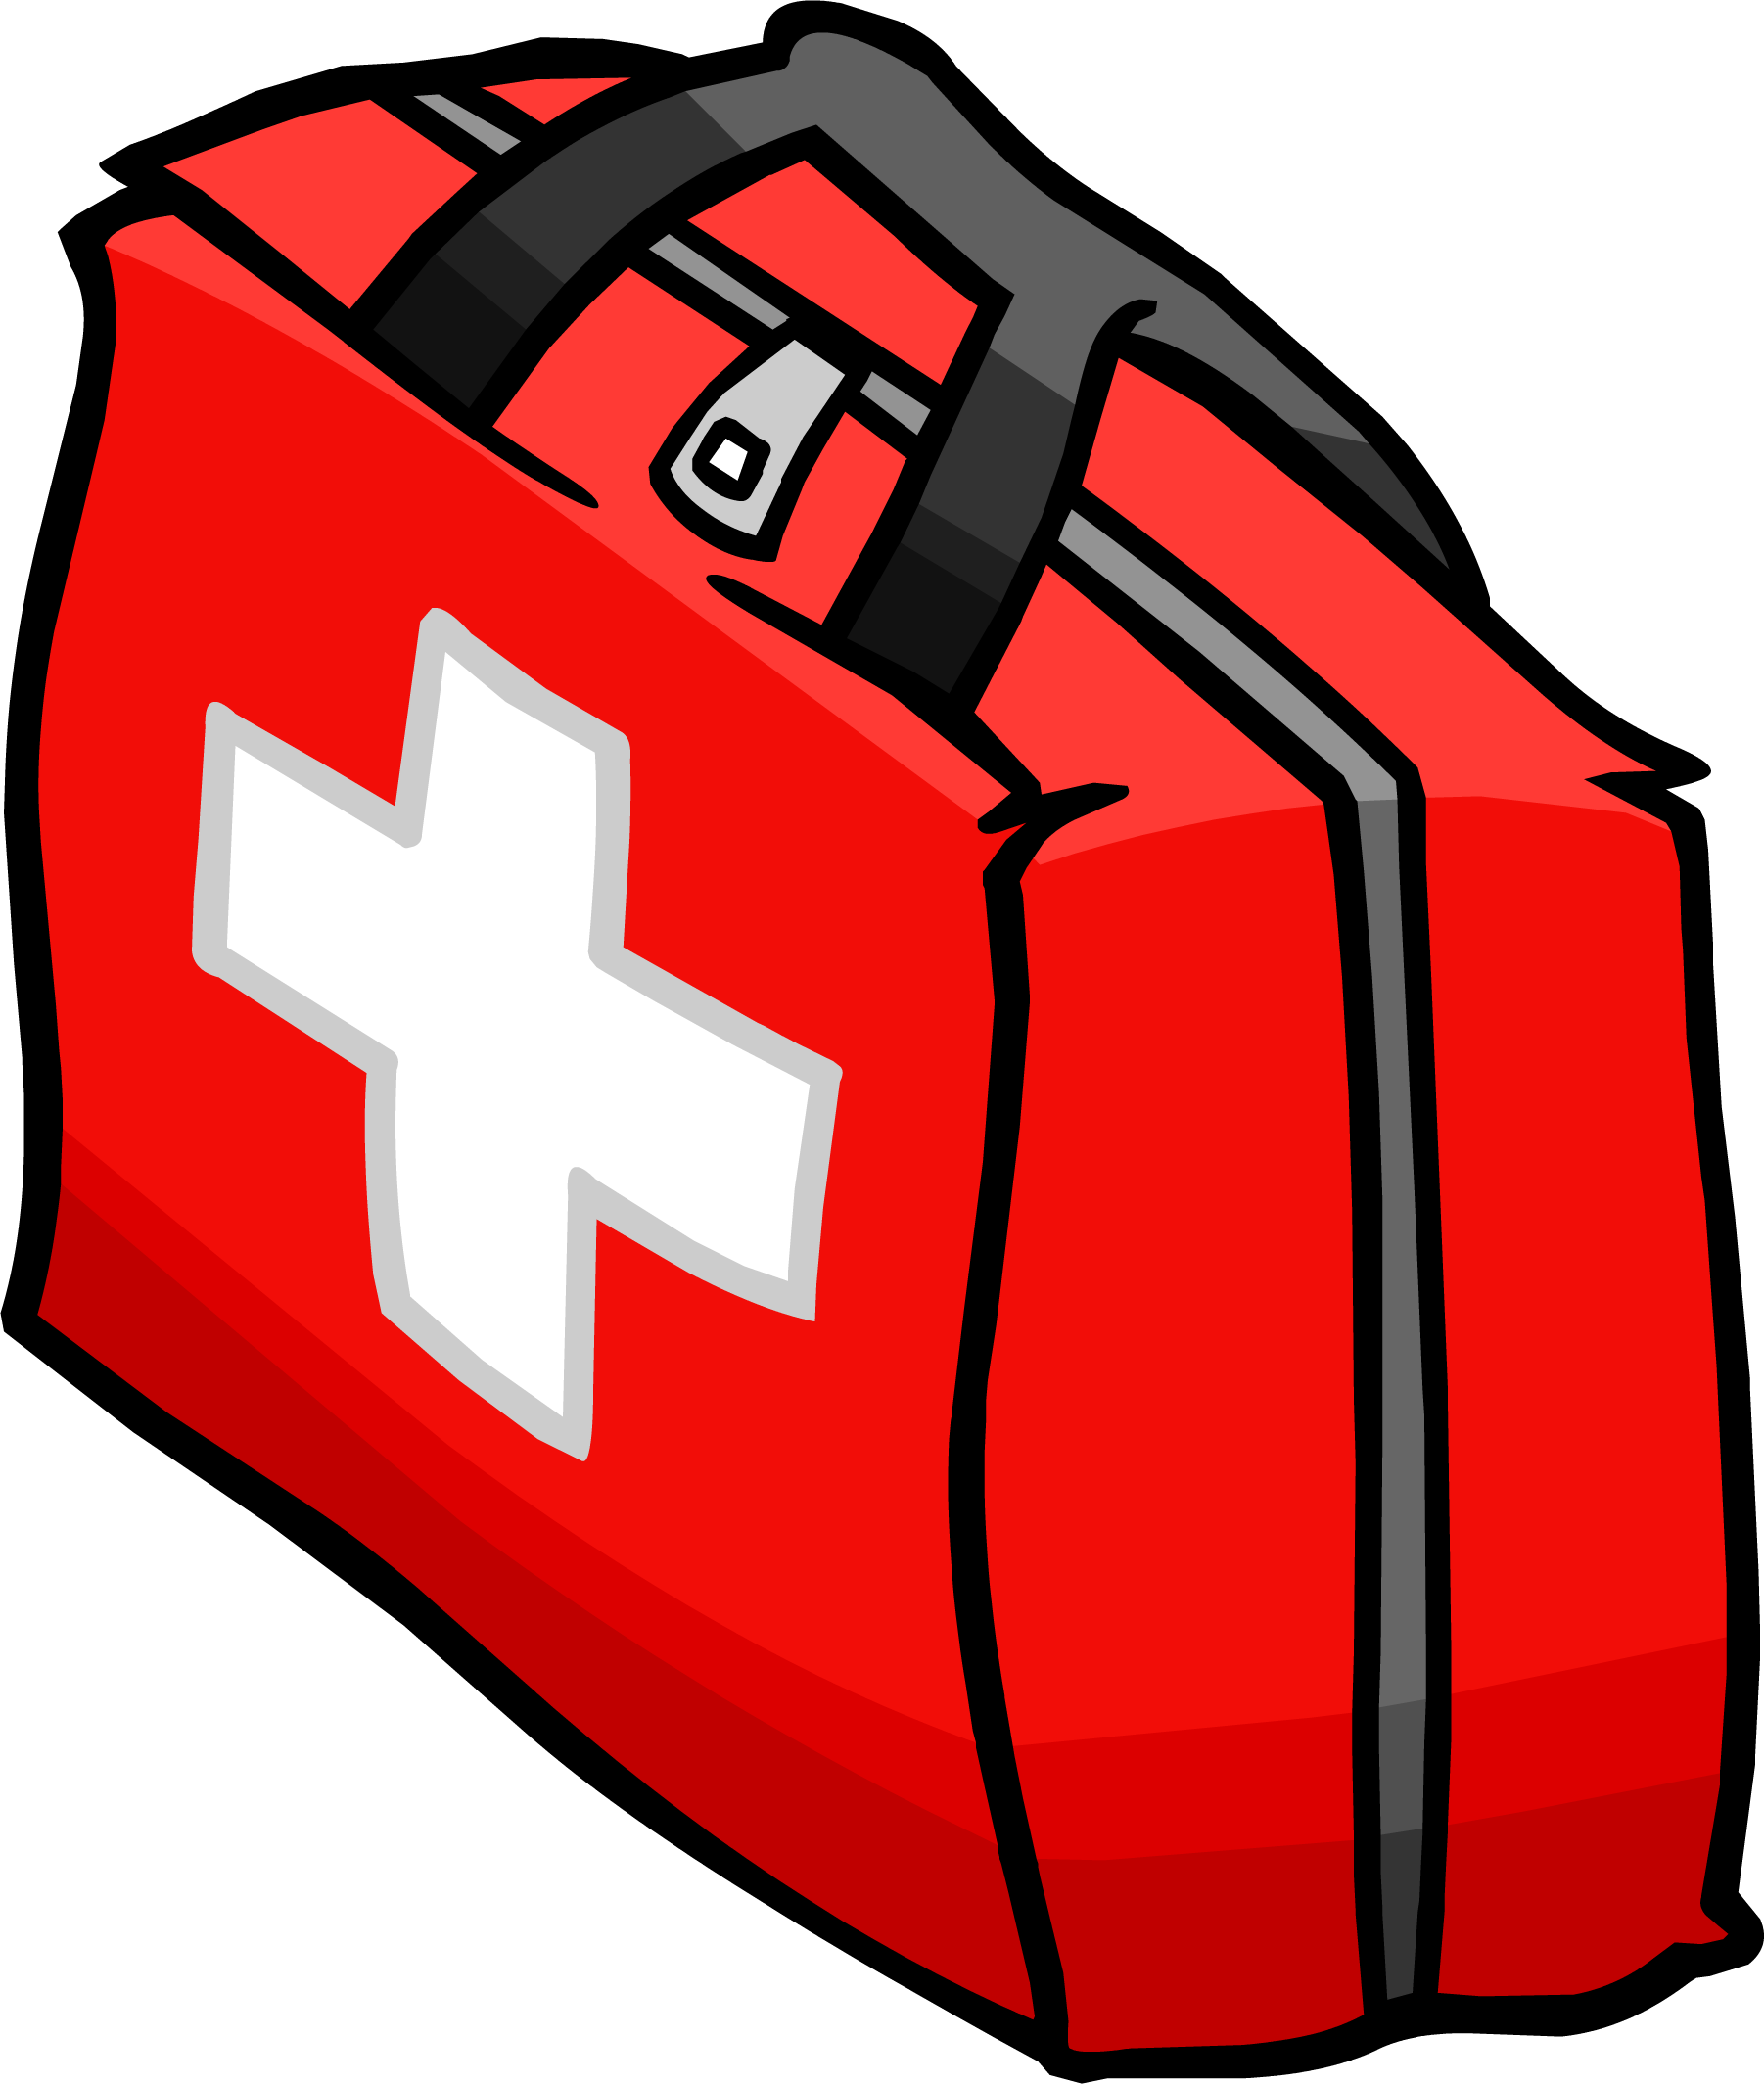 First aid kit clip art.